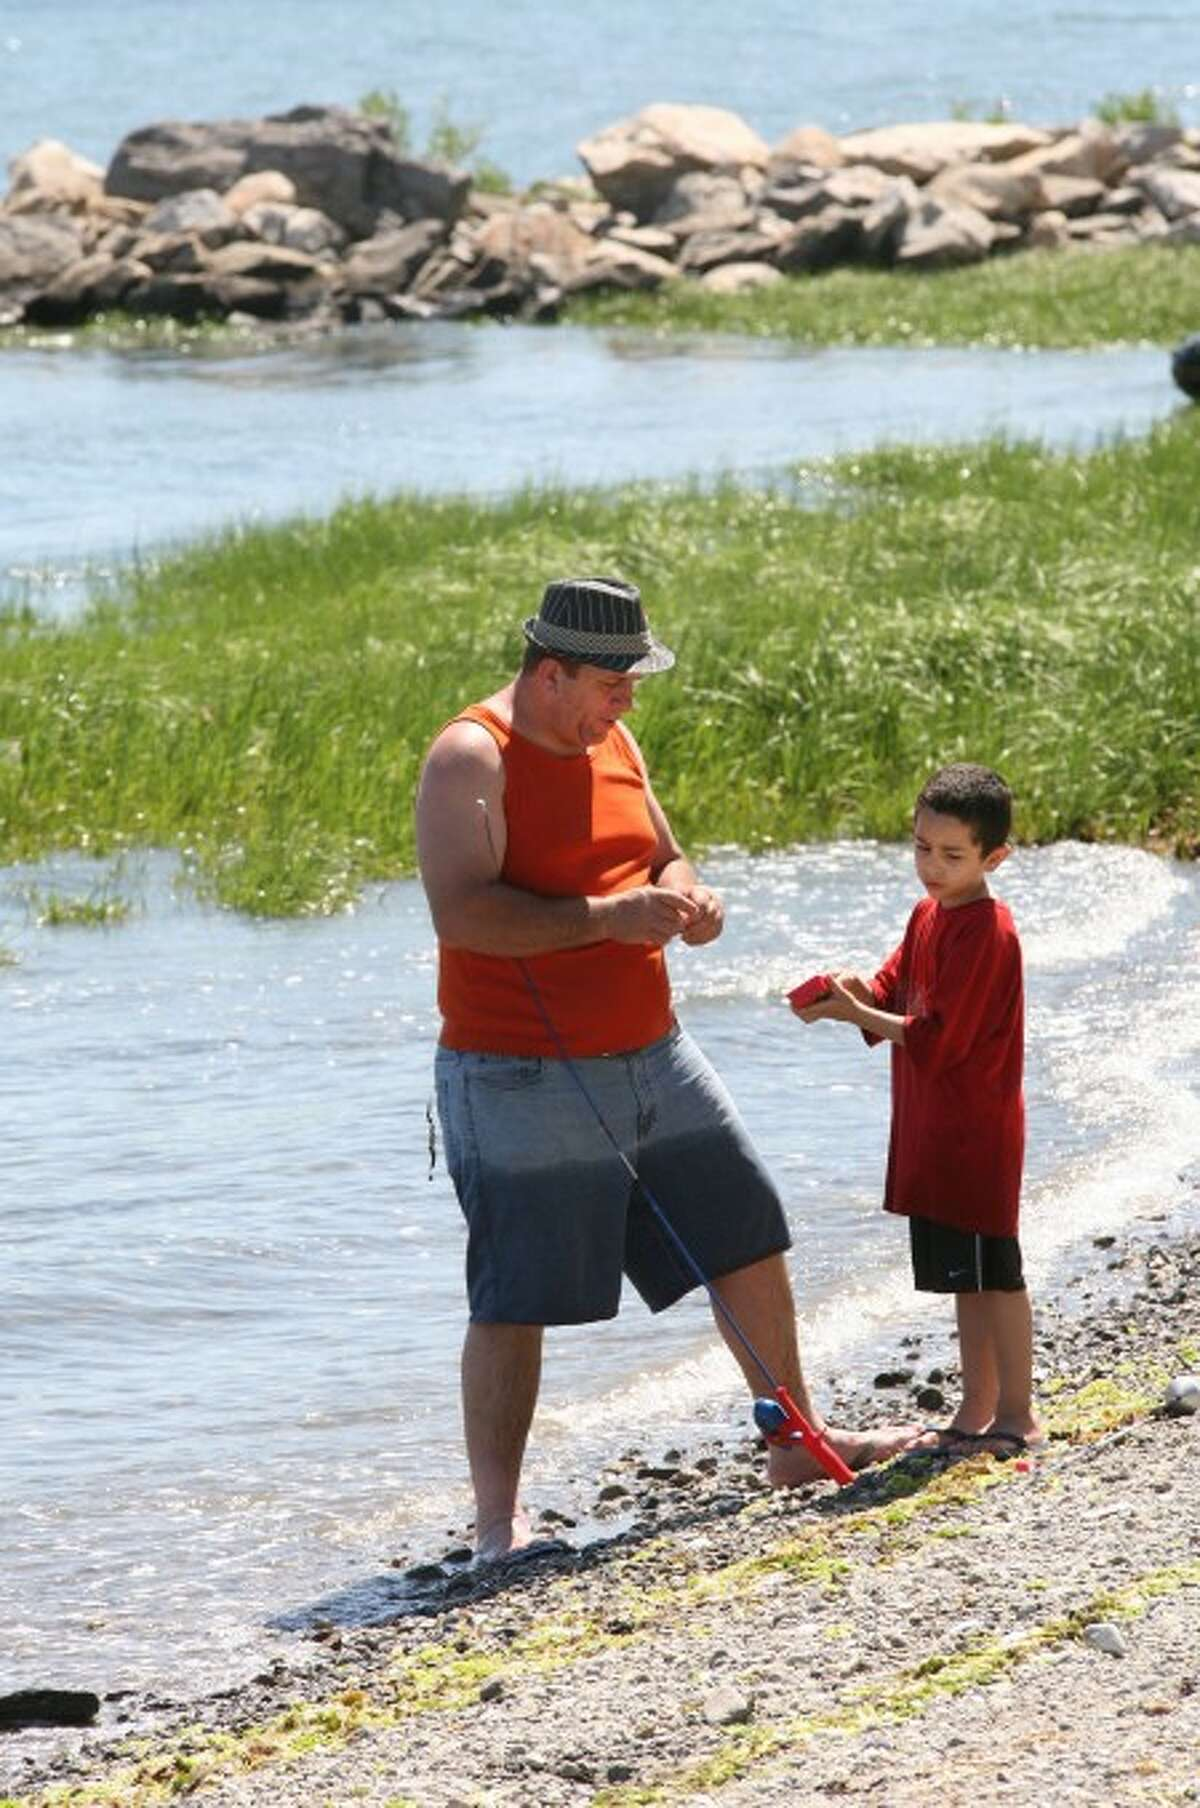 Great weather this Memorial Day weekend brought a father and son to Calf Pasture Beach in Norwalk for fishing Sunday afternoon. Hour Photo / Danielle Robinson